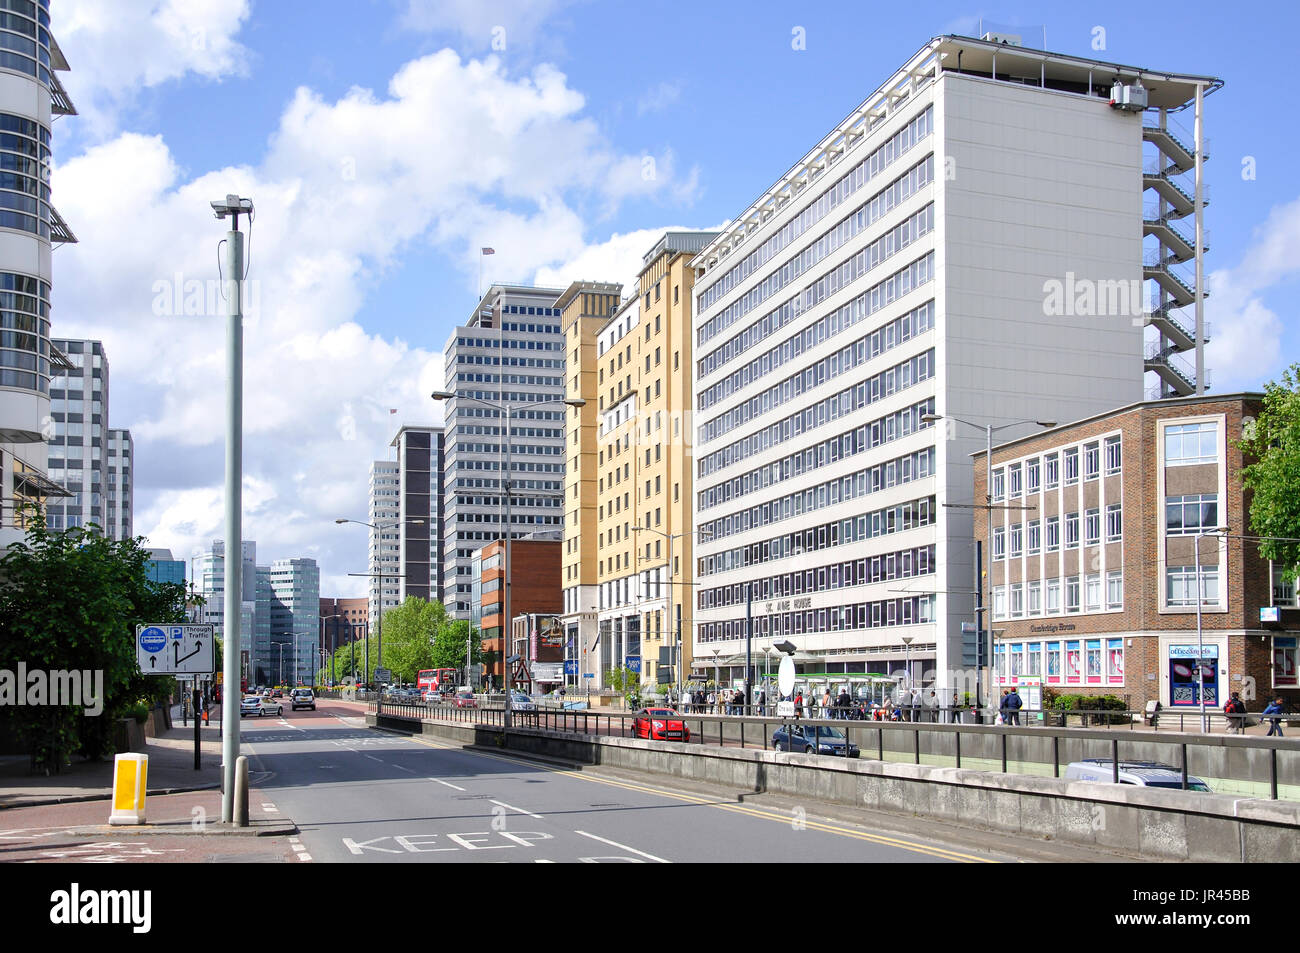 Wellesley Road, Croydon, London Borough of Croydon, Greater London, England, United Kingdom - Stock Image